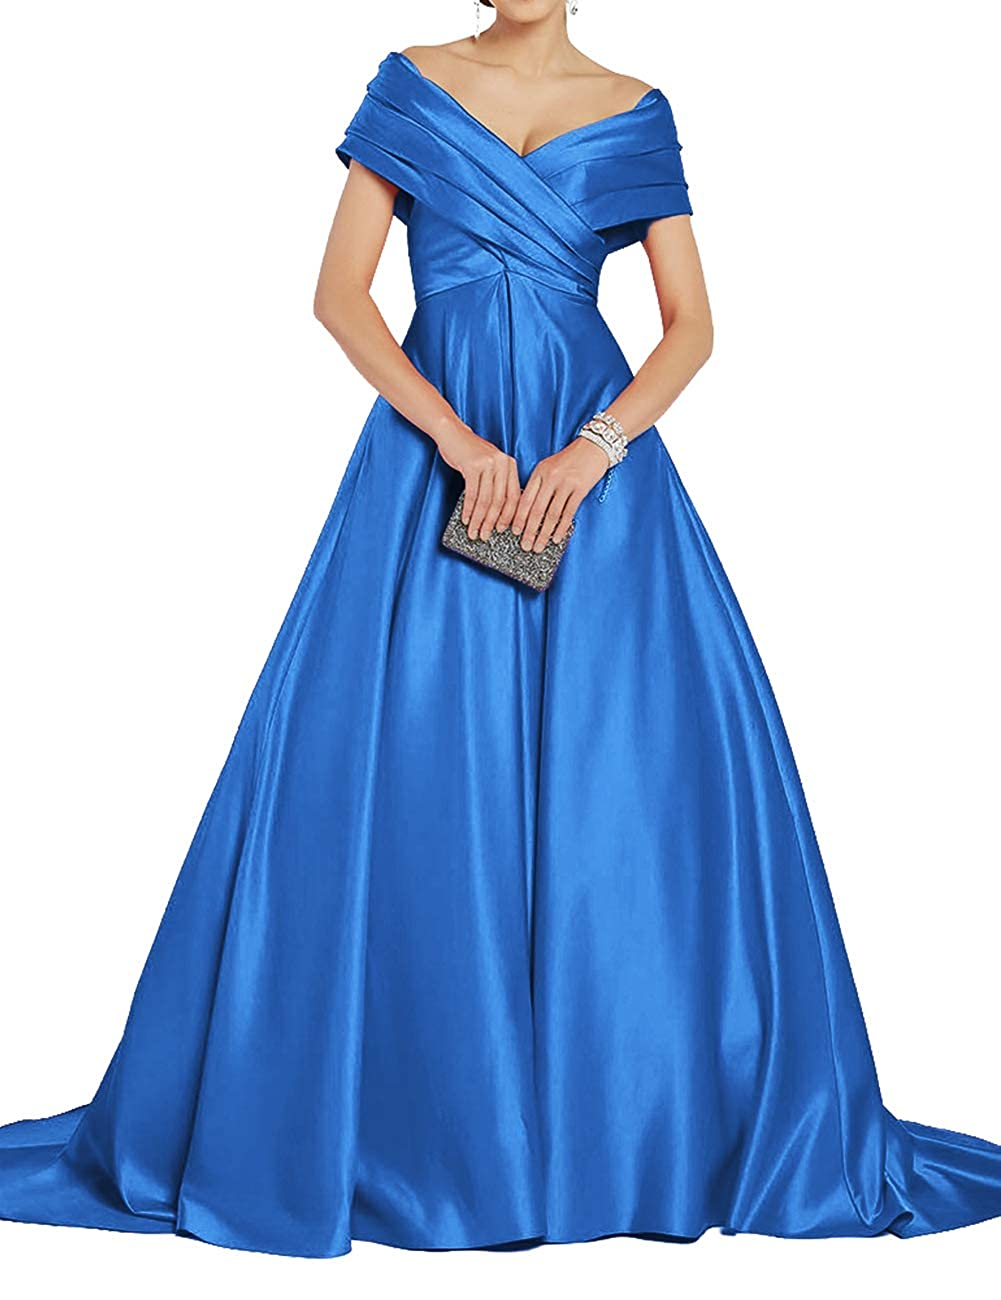 bluee Uther Off Shoulder Prom Dresses Long ALine Satin Ball Gowns for Women Formal Evening